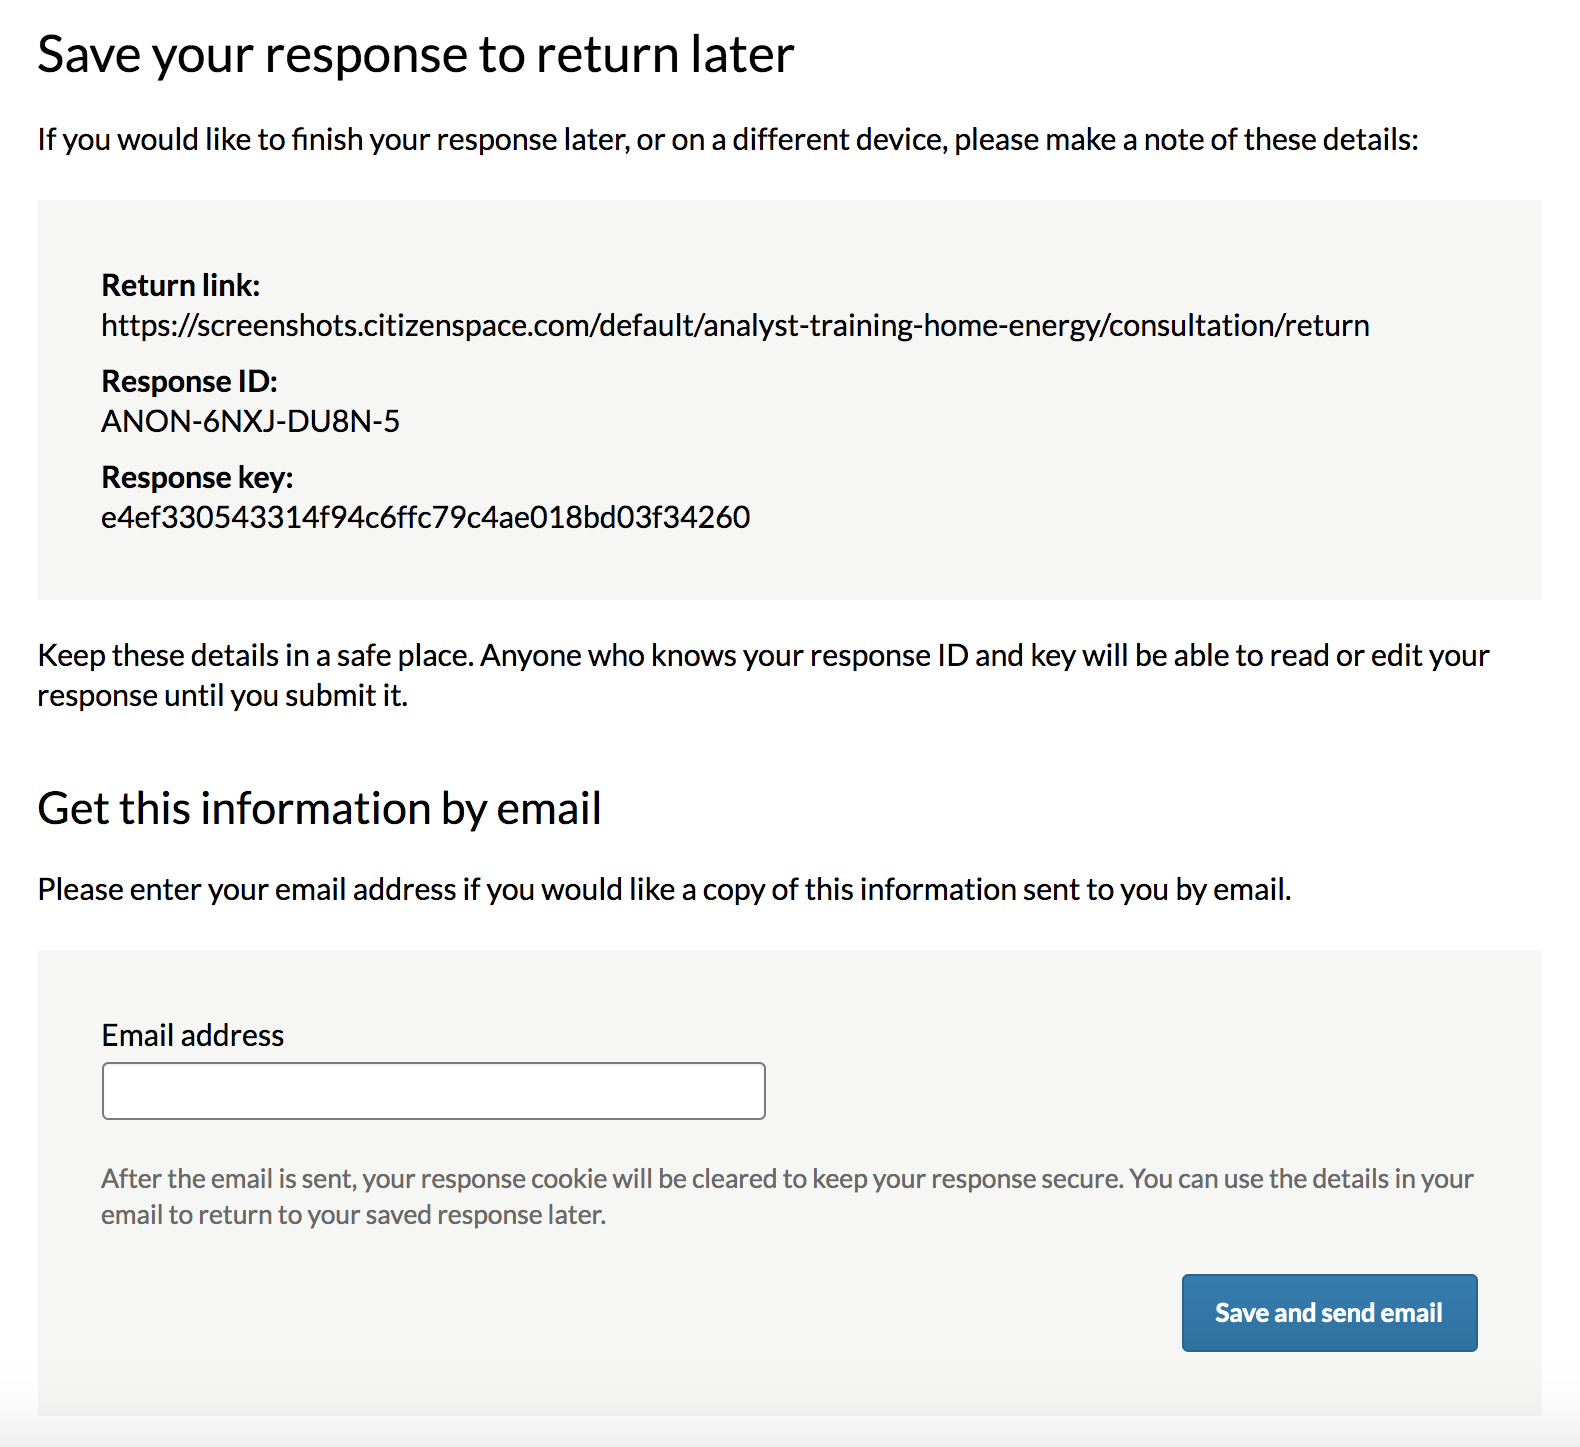 Save and return page which provides a return link, a response key and the response ID